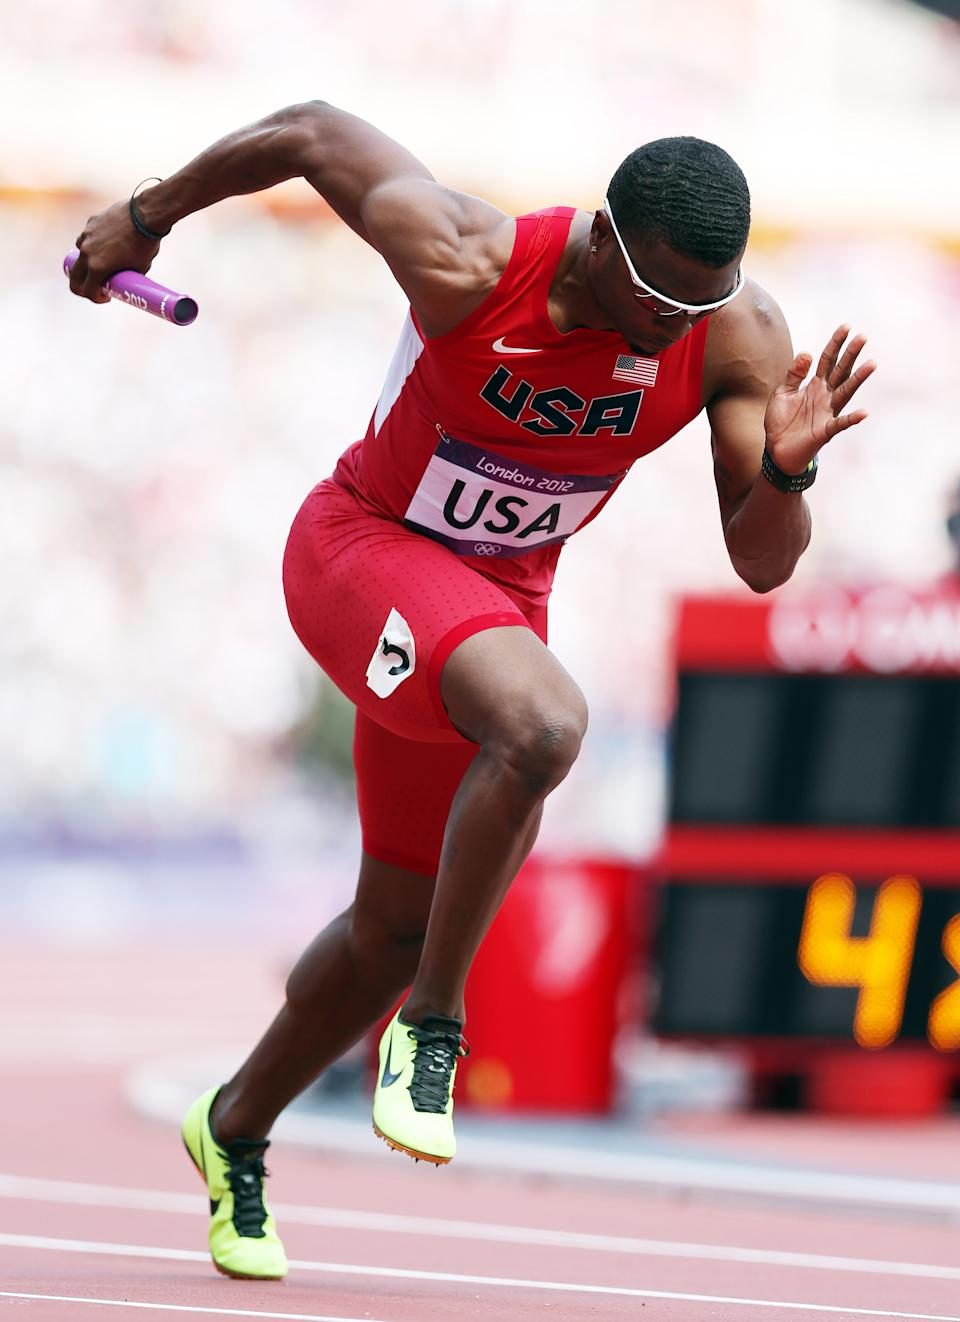 Manteo Mitchell of USA in action during the heats of the men's 4x400m relays , during the 2012 London Olympics at The Olympic Stadium on August 09, 2012 in London, England. (Photo by Ian MacNicol/Getty Images)